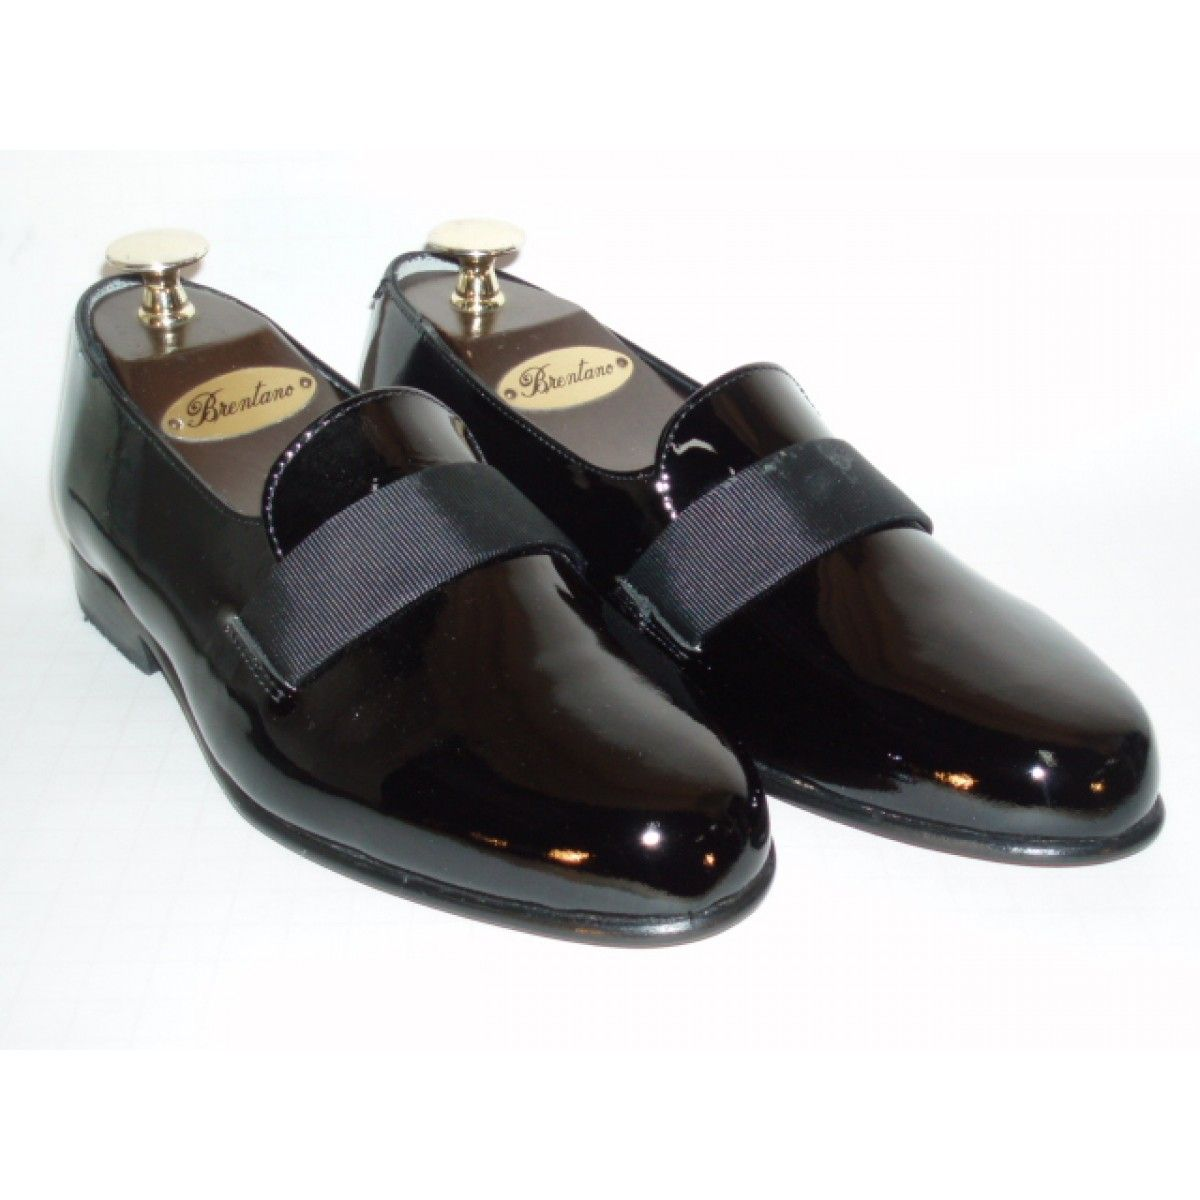 Brentano Tuxedo Black Patent Leather Slip on Shoes with Leather Soles